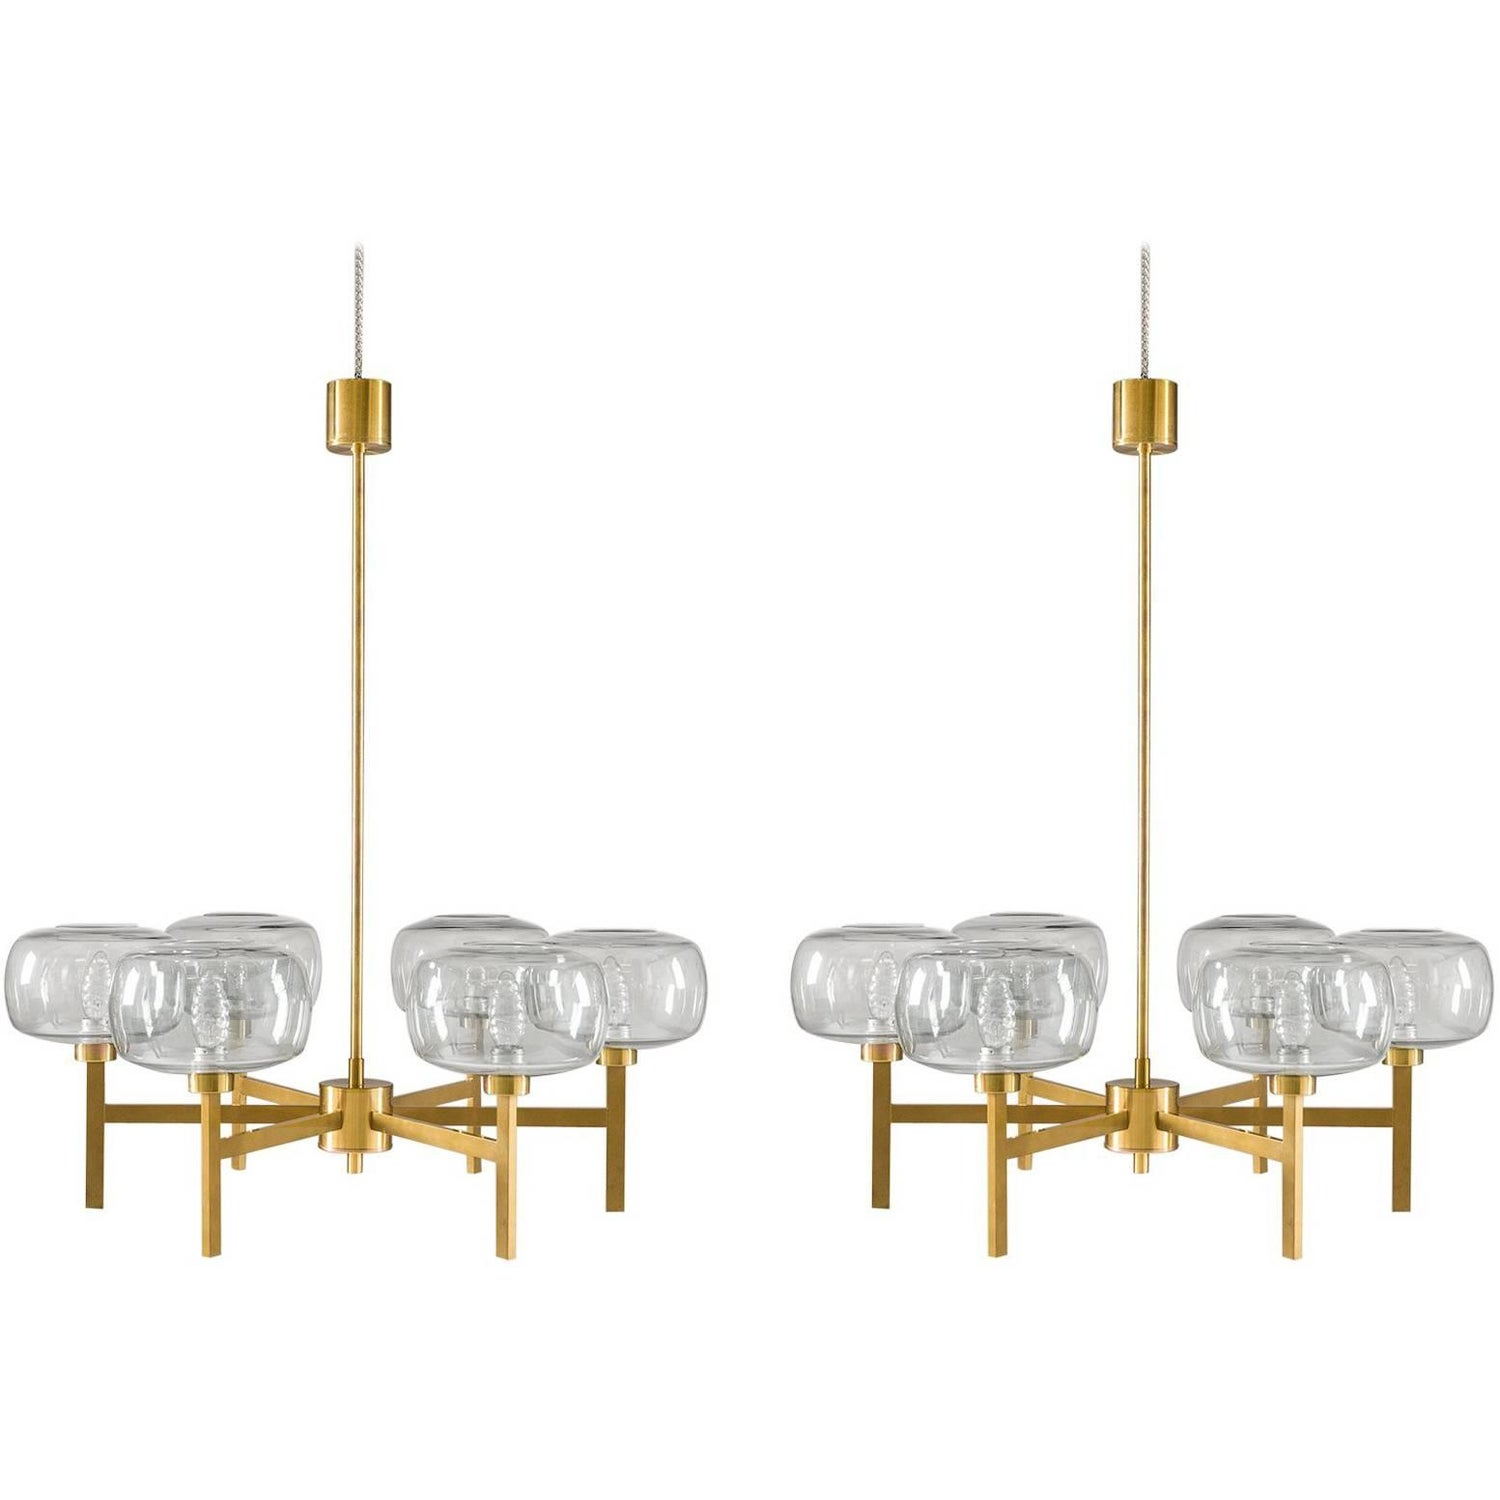 Eight large swedish chandeliers by holger johansson 1952 for sale large swedish chandelier in brass and glass by holger johansson mozeypictures Choice Image